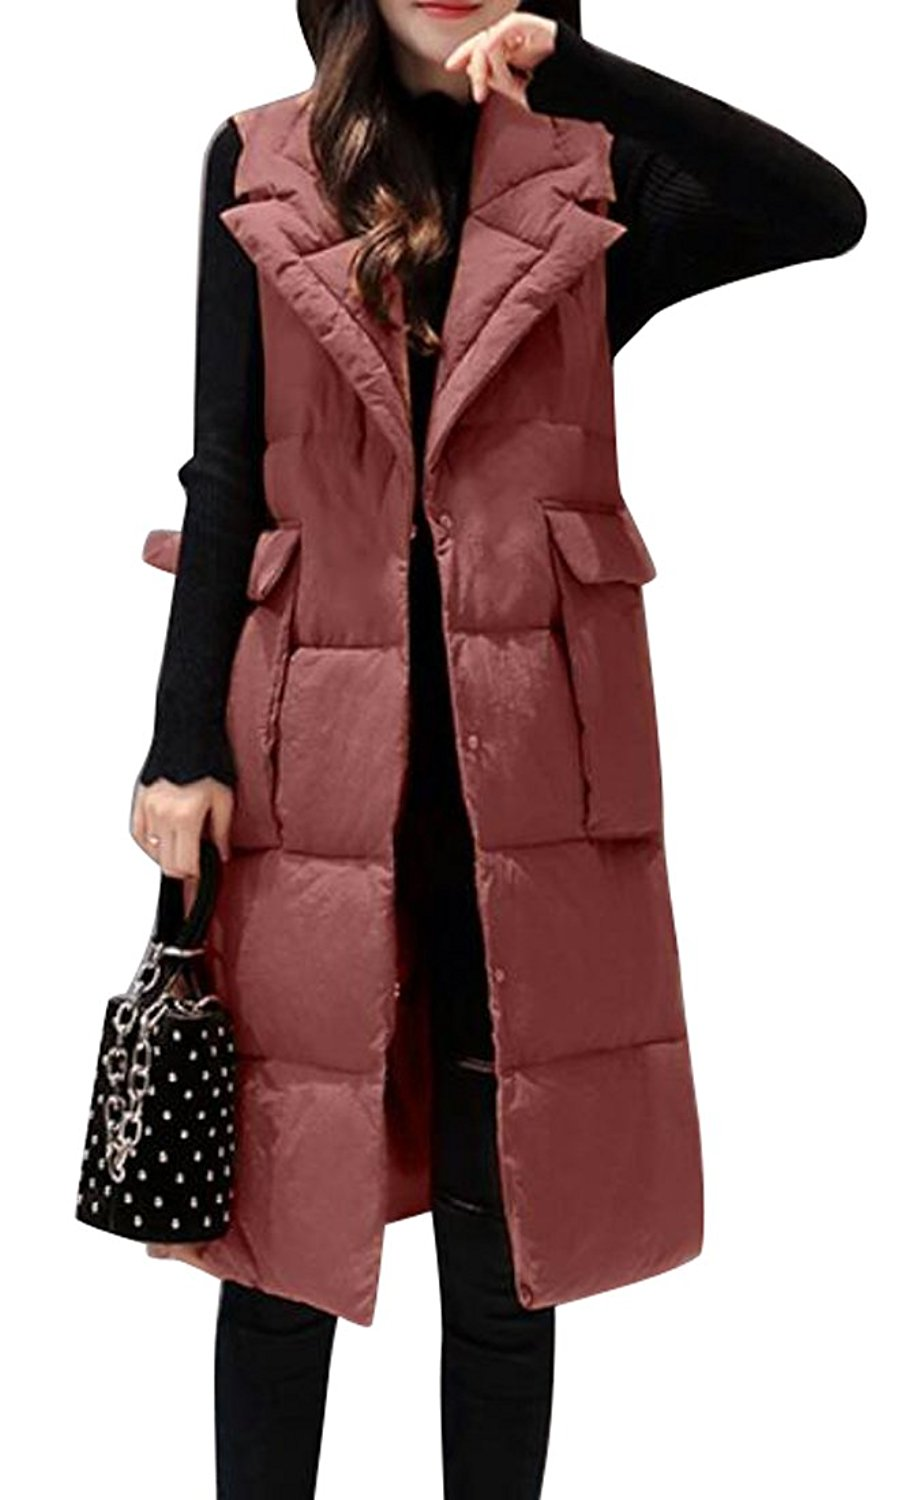 c6529517a56 Get Quotations · SYTX Women Winter Long Down Quilted Vest Outdoor Puffer  Vest Jacket